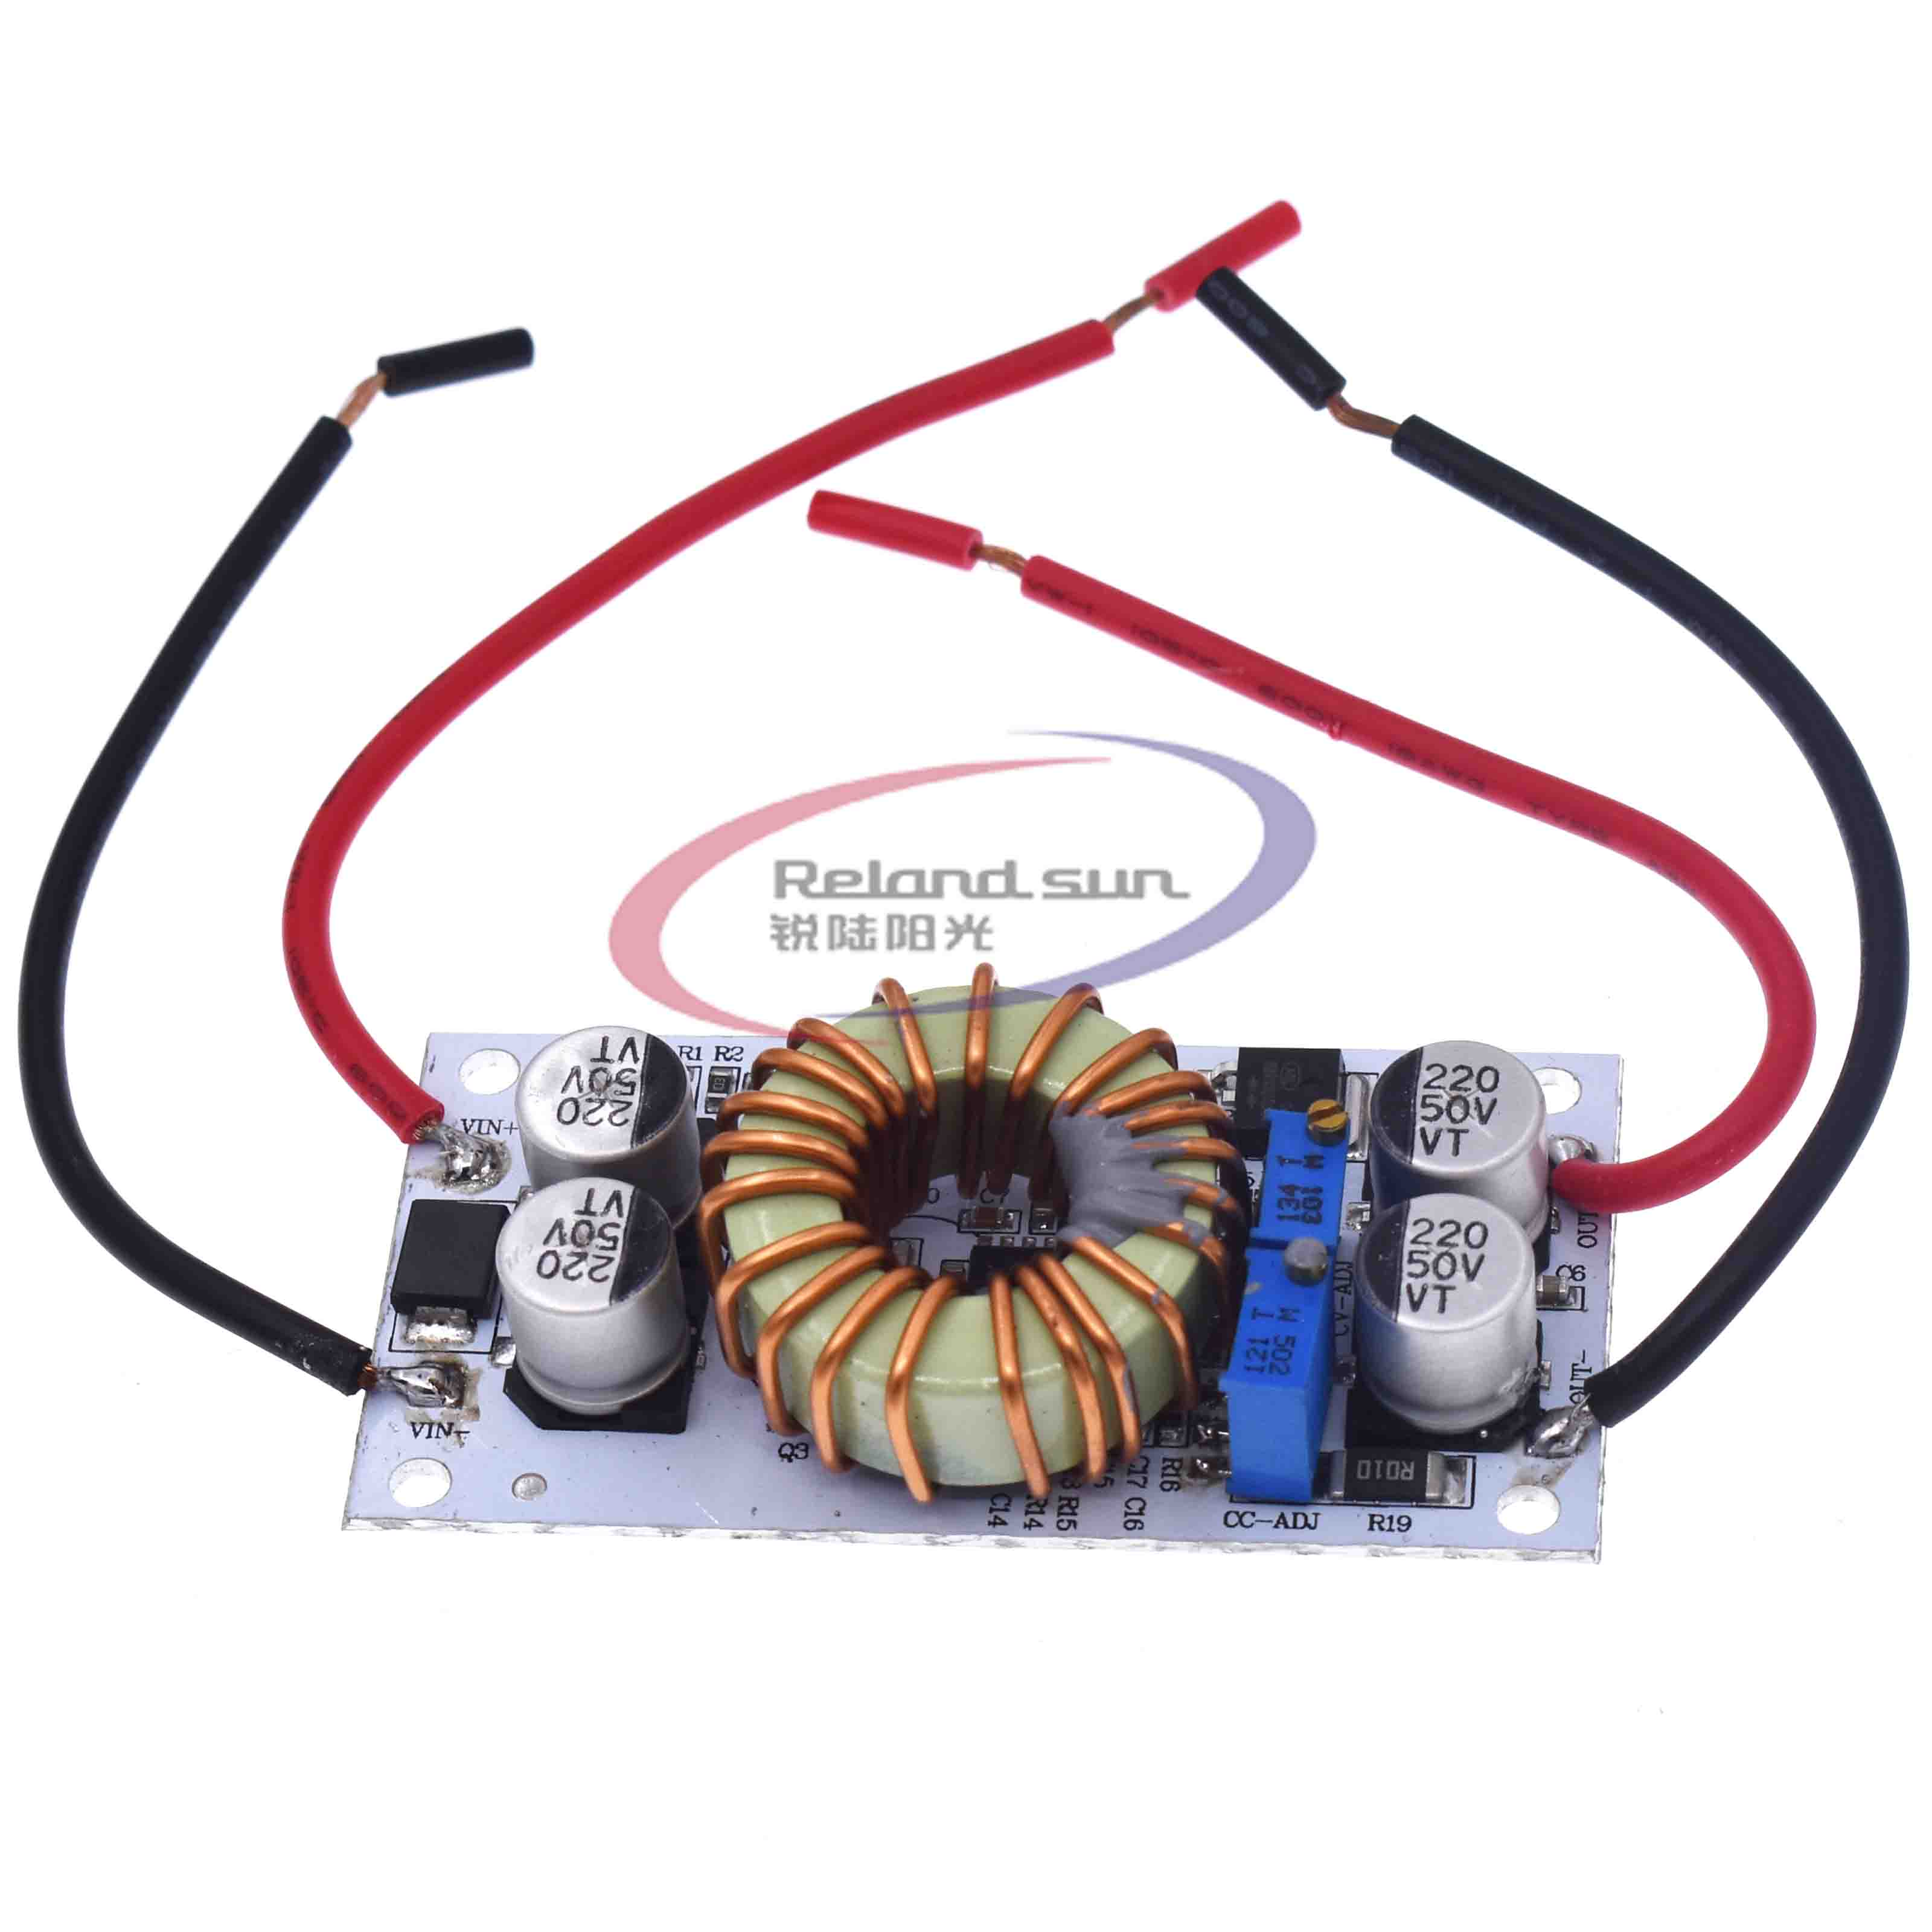 250W DC-DC Boost Converter Adjustable 10A Step Up Constant Current Power Supply Module Led Driver For Arduino250W DC-DC Boost Converter Adjustable 10A Step Up Constant Current Power Supply Module Led Driver For Arduino